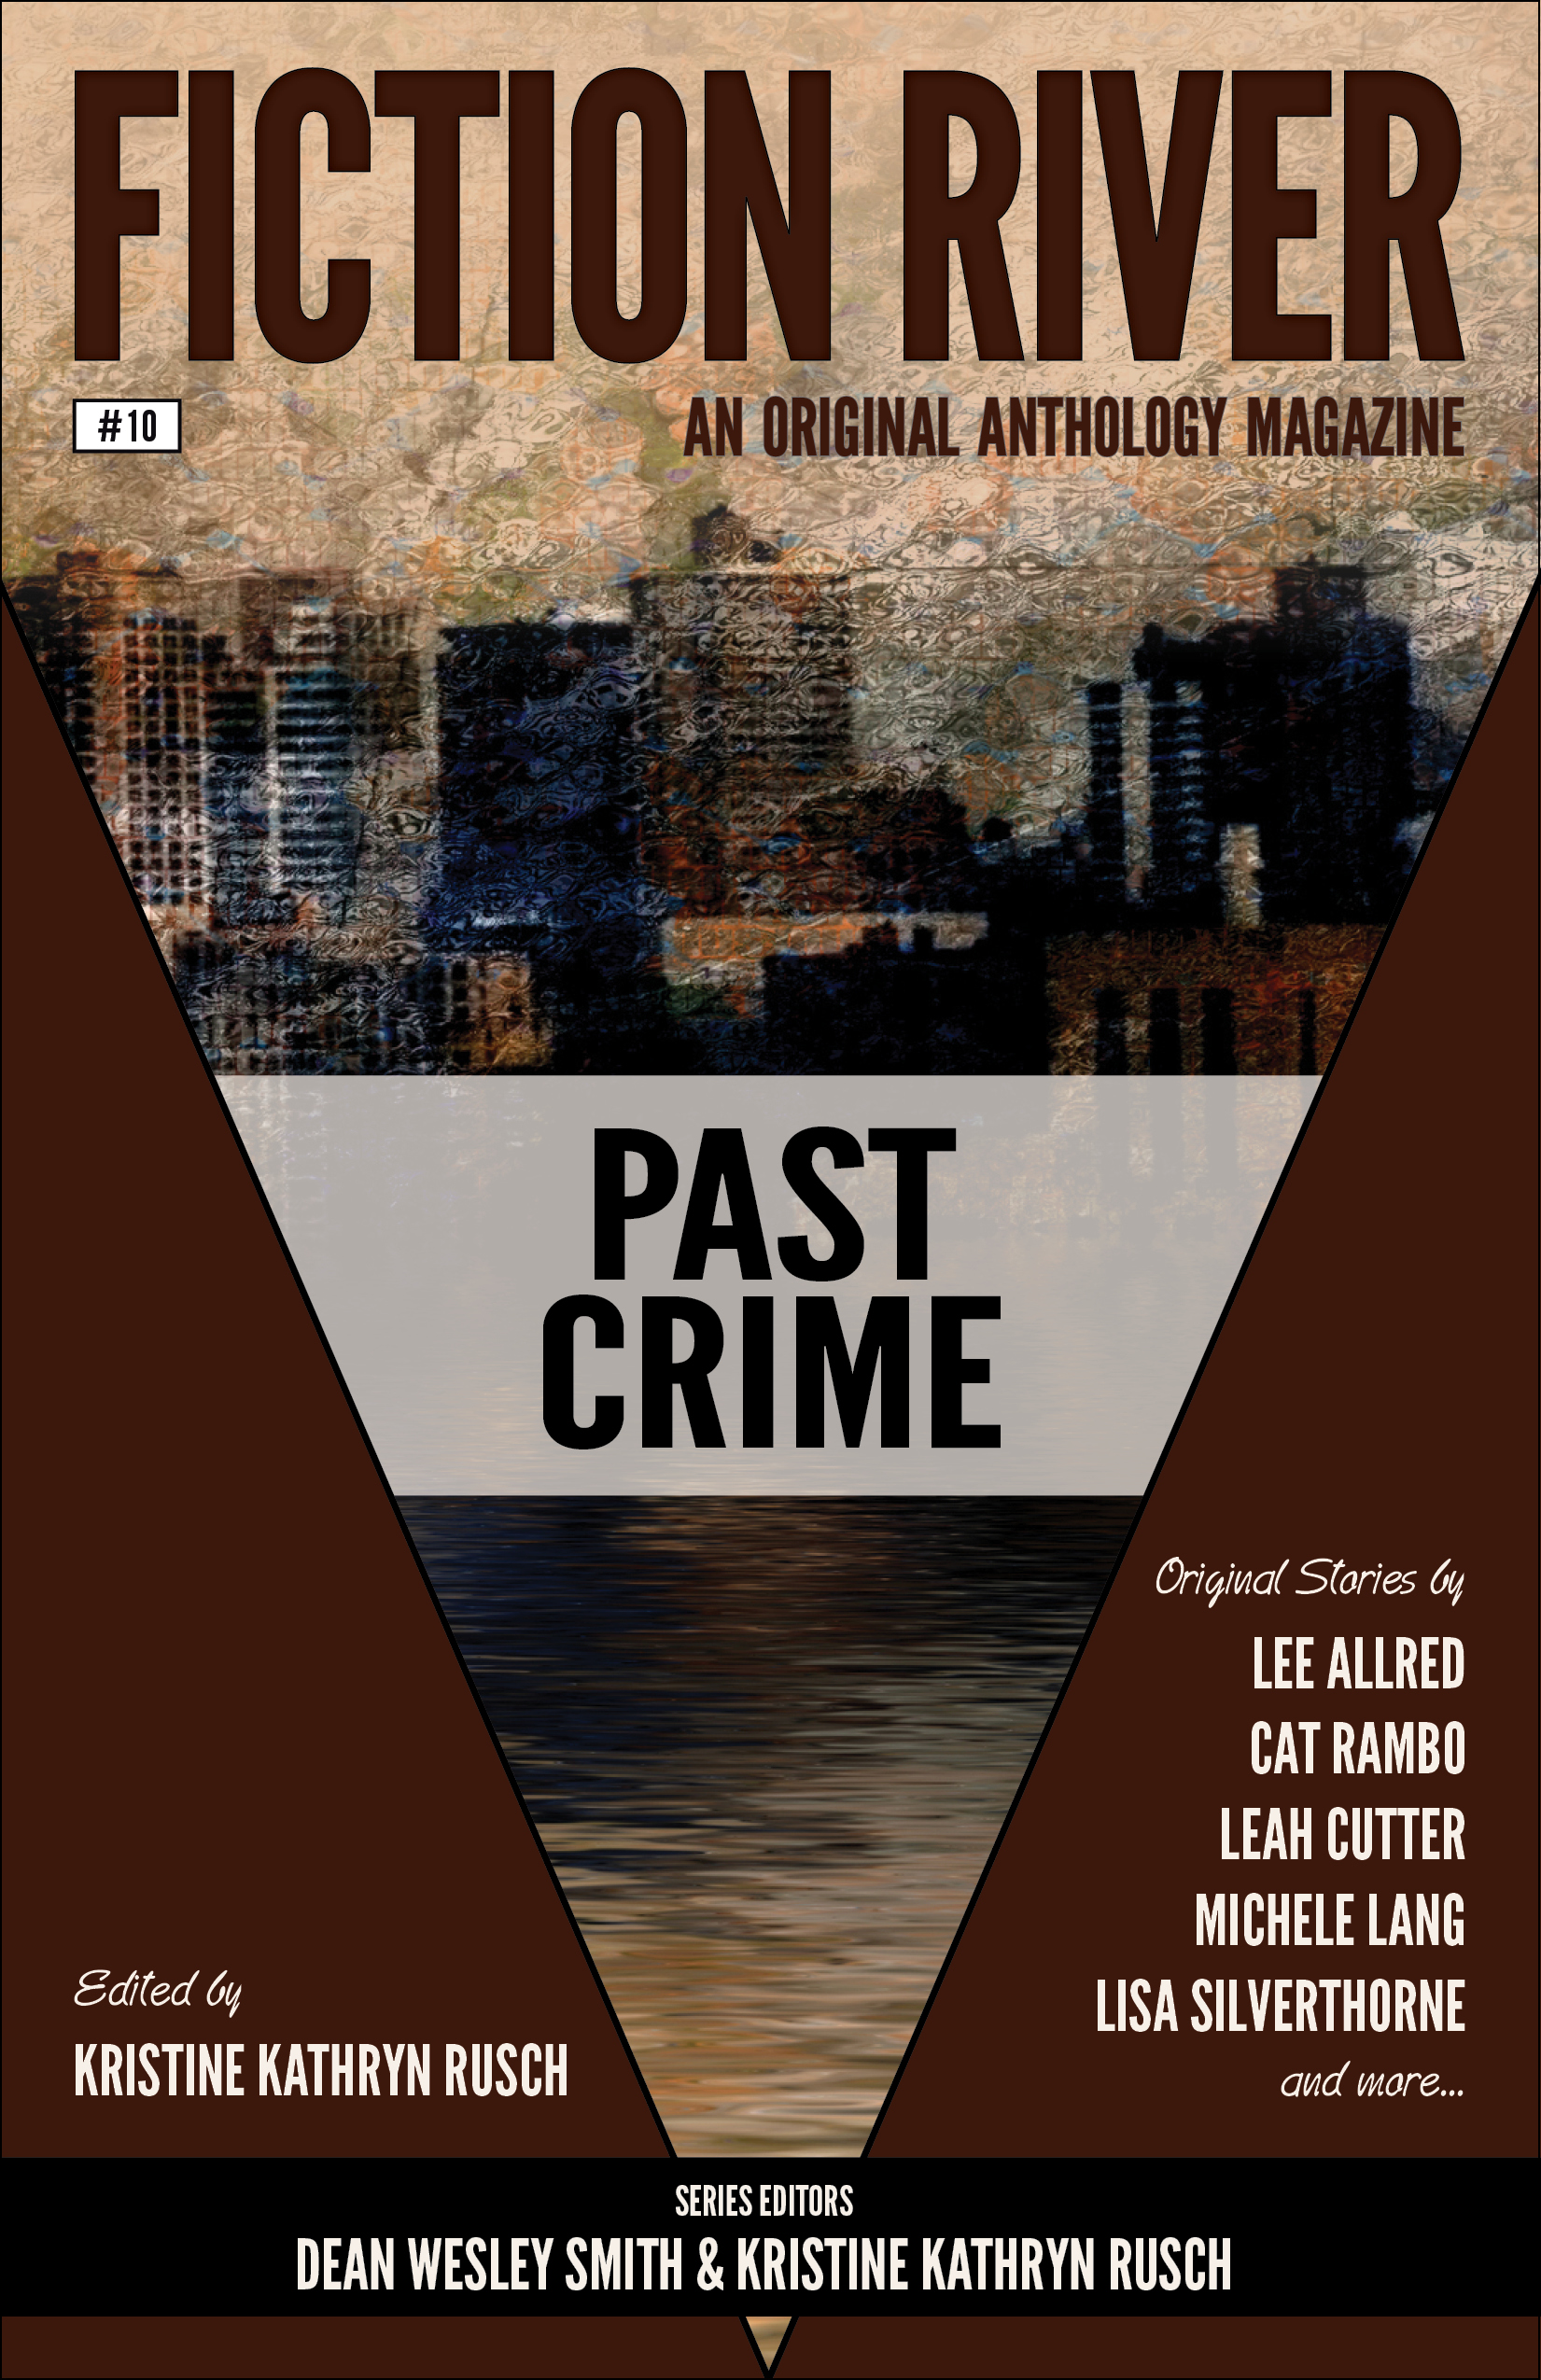 FR Past Crime ebook cover